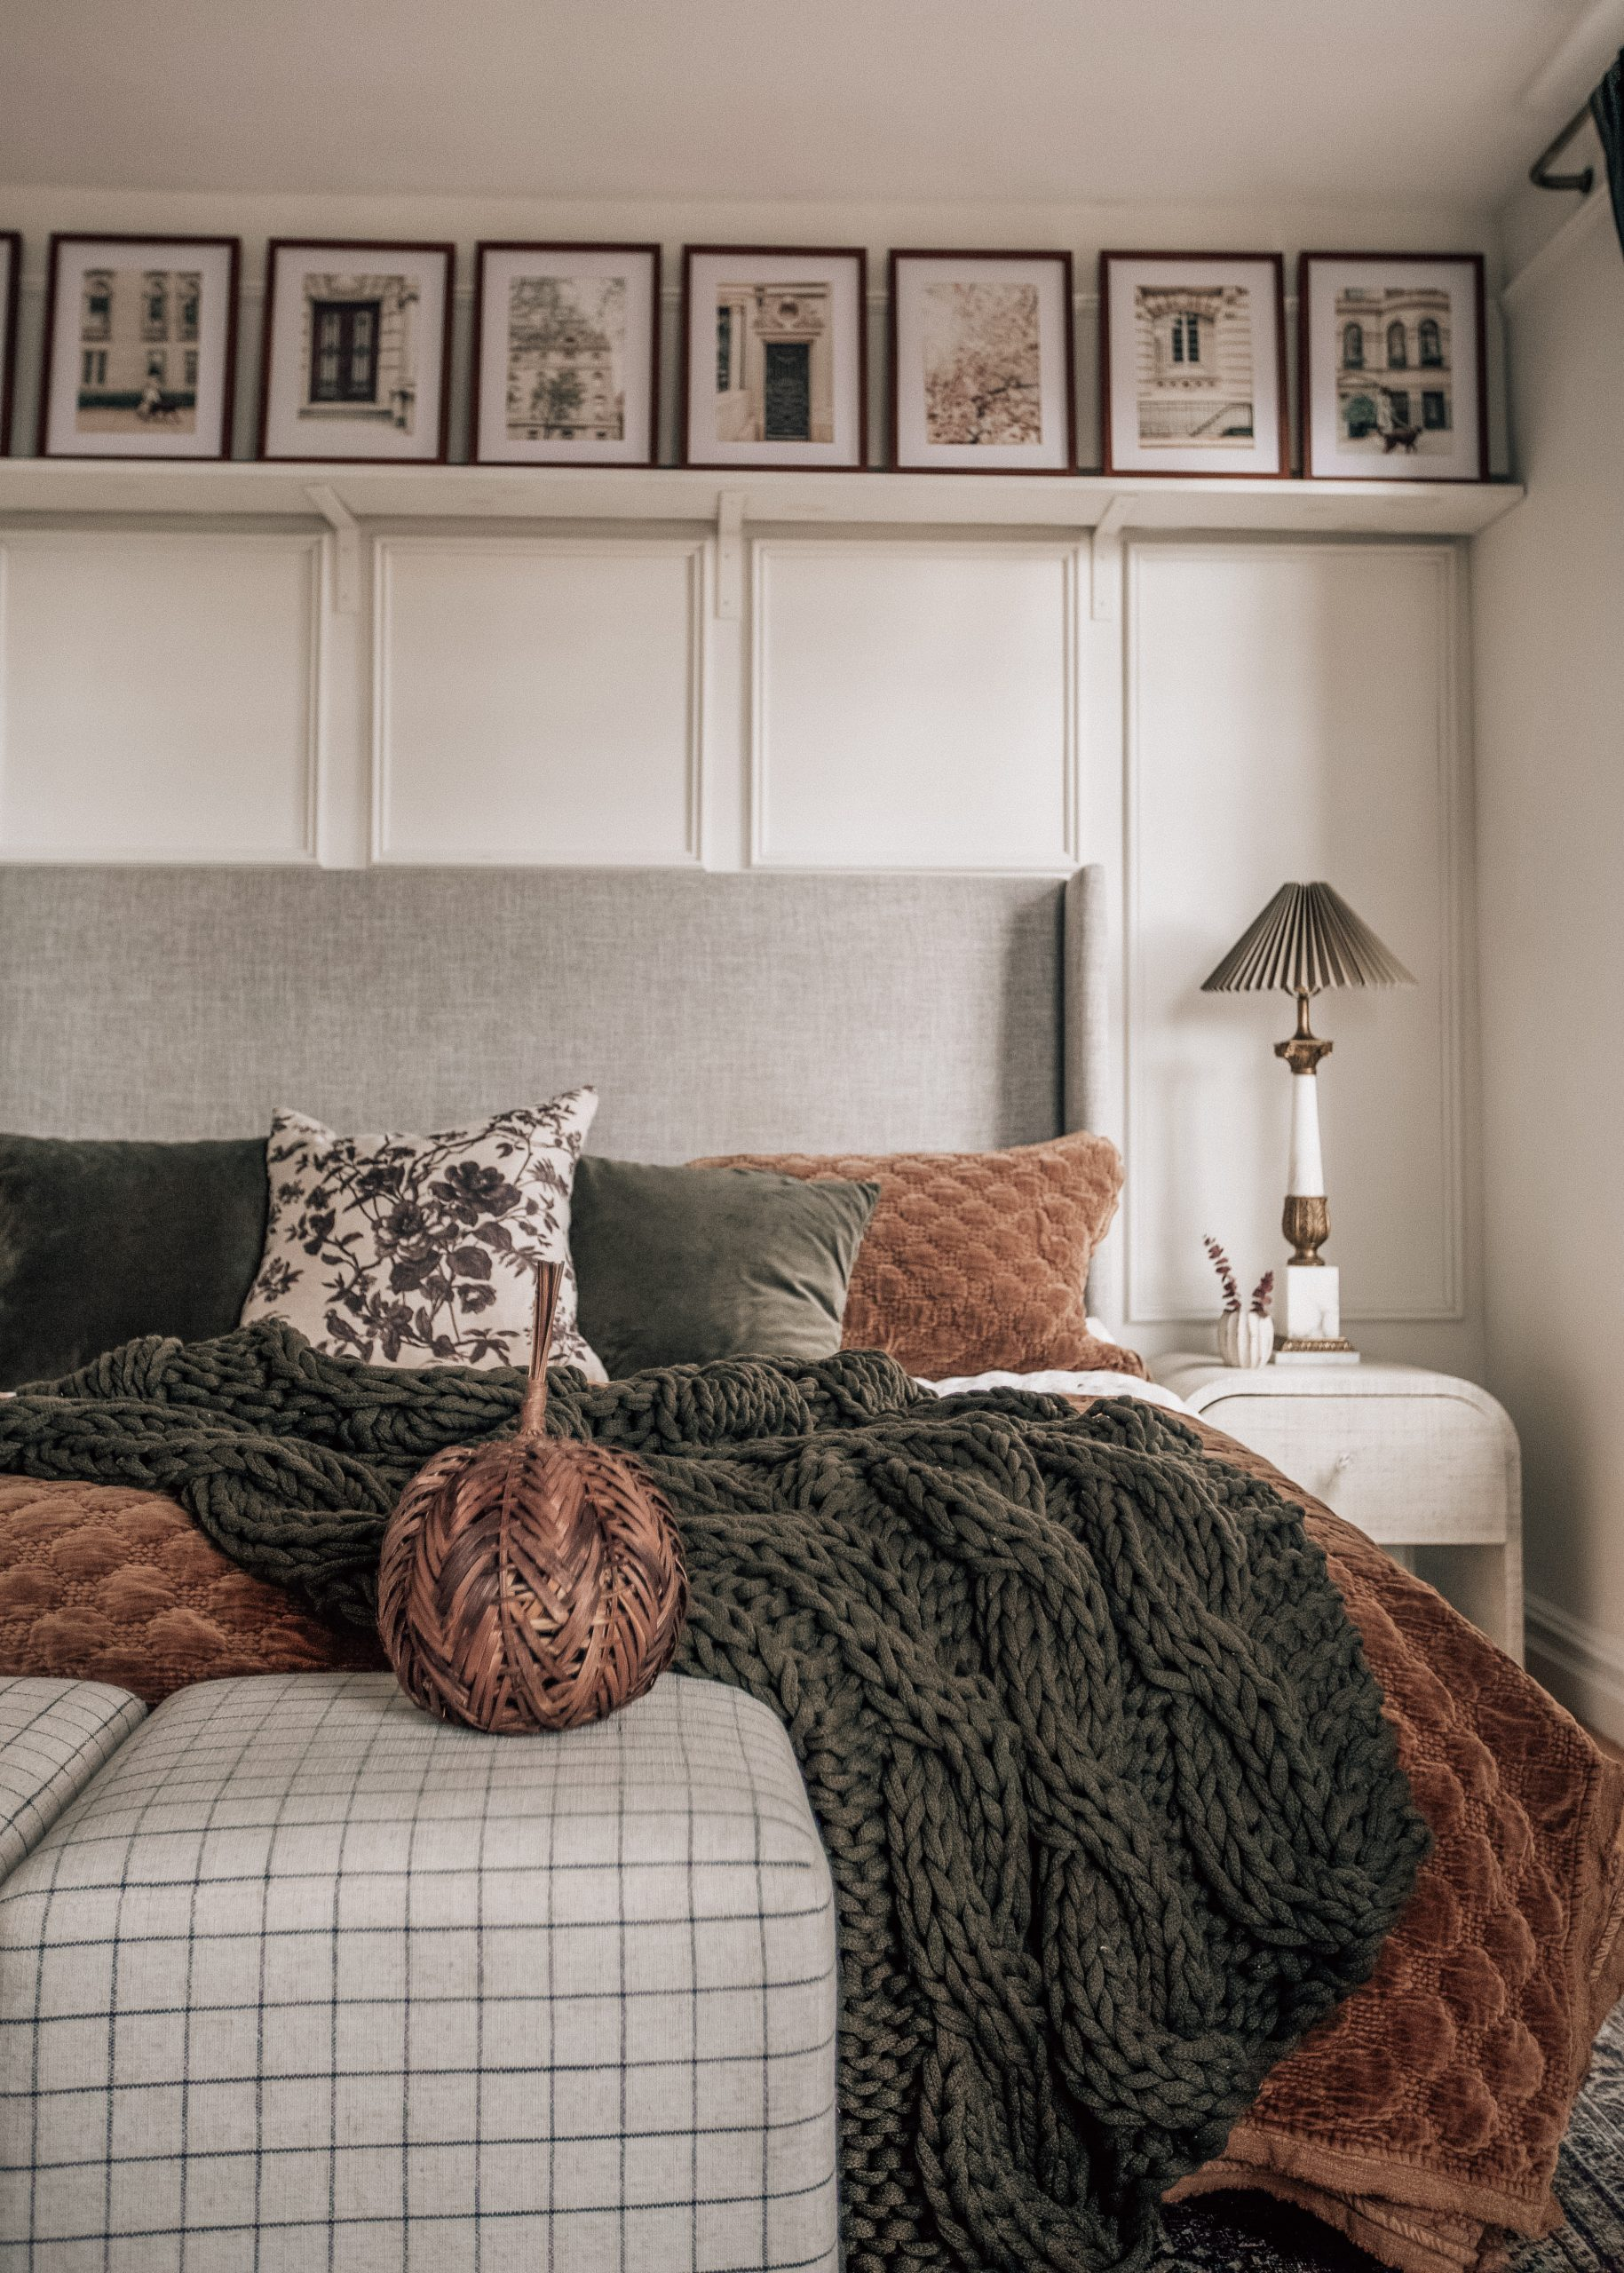 5 Timeless Items To Decorate a Bedroom for Fall